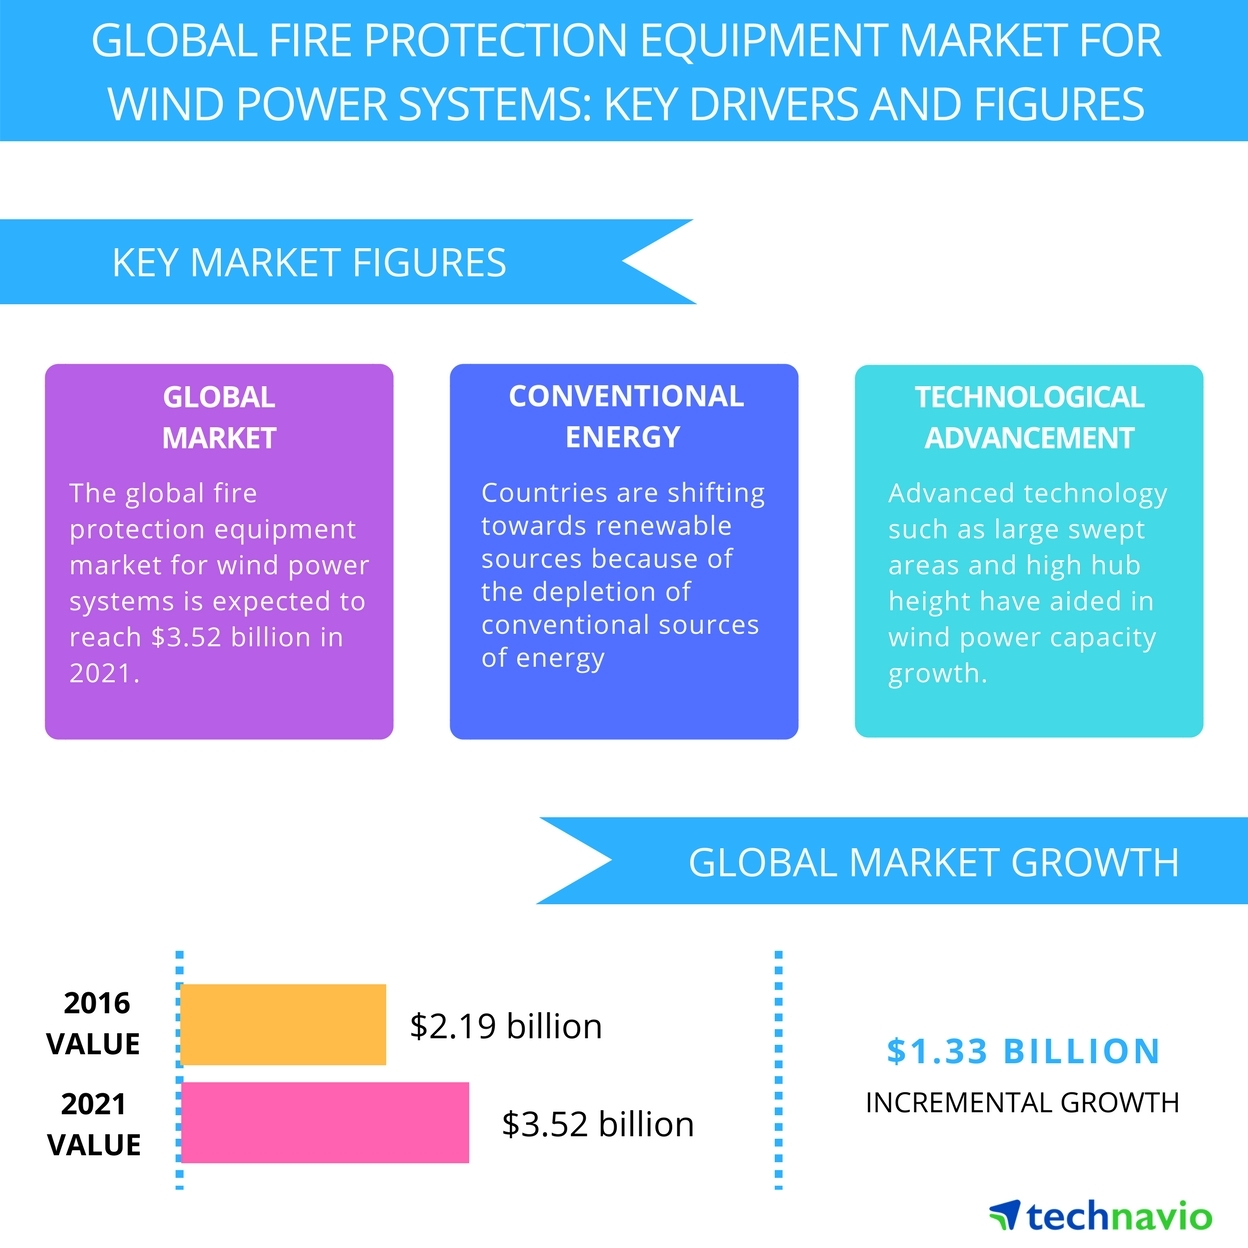 Technavio has published a new report on the global fire protection equipment market for wind power systems from 2017-2021. (Graphic: Business Wire)